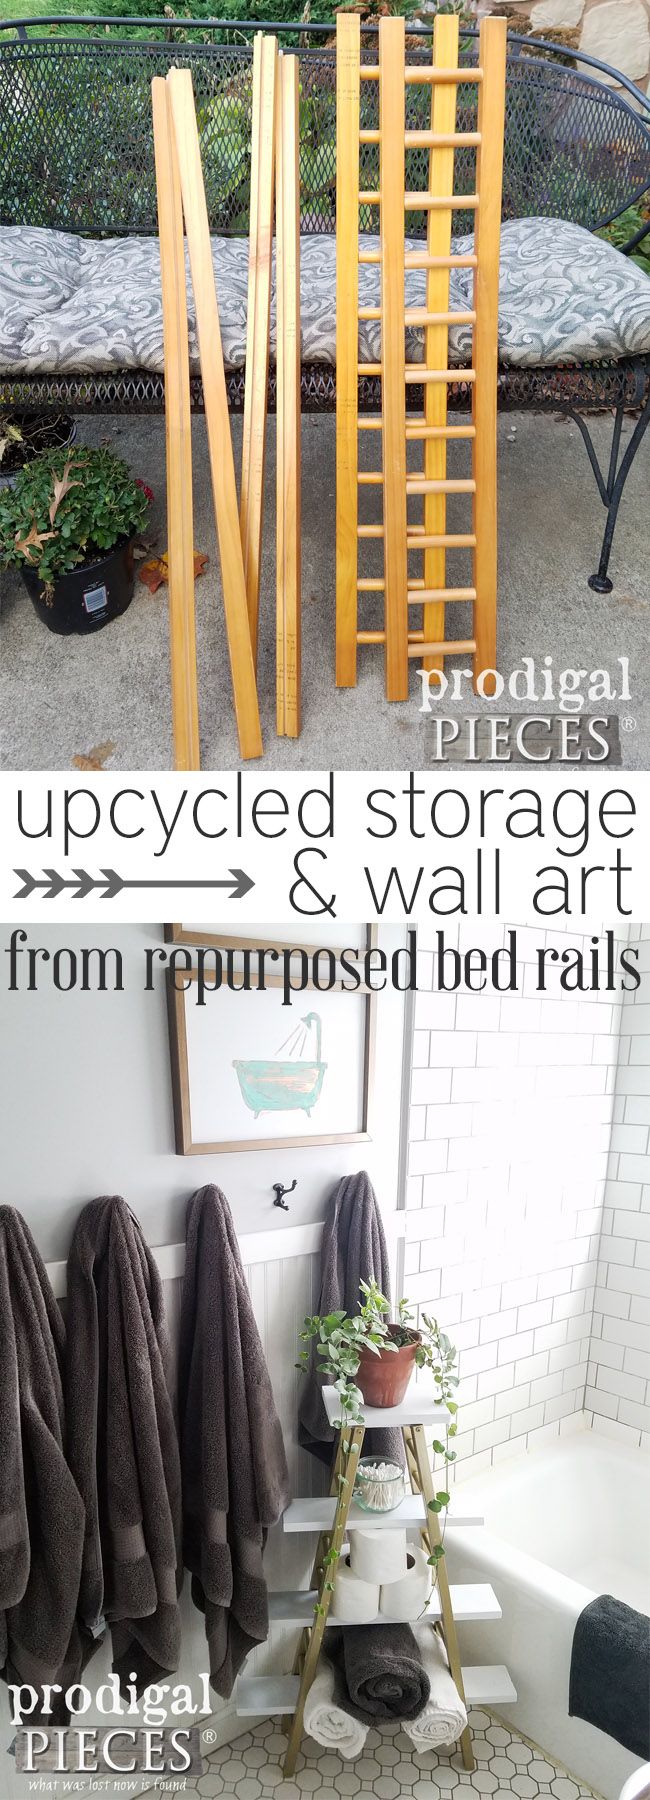 This Is So Cool Upcycled Storage And Diy Wall Art All Created From Some Cast